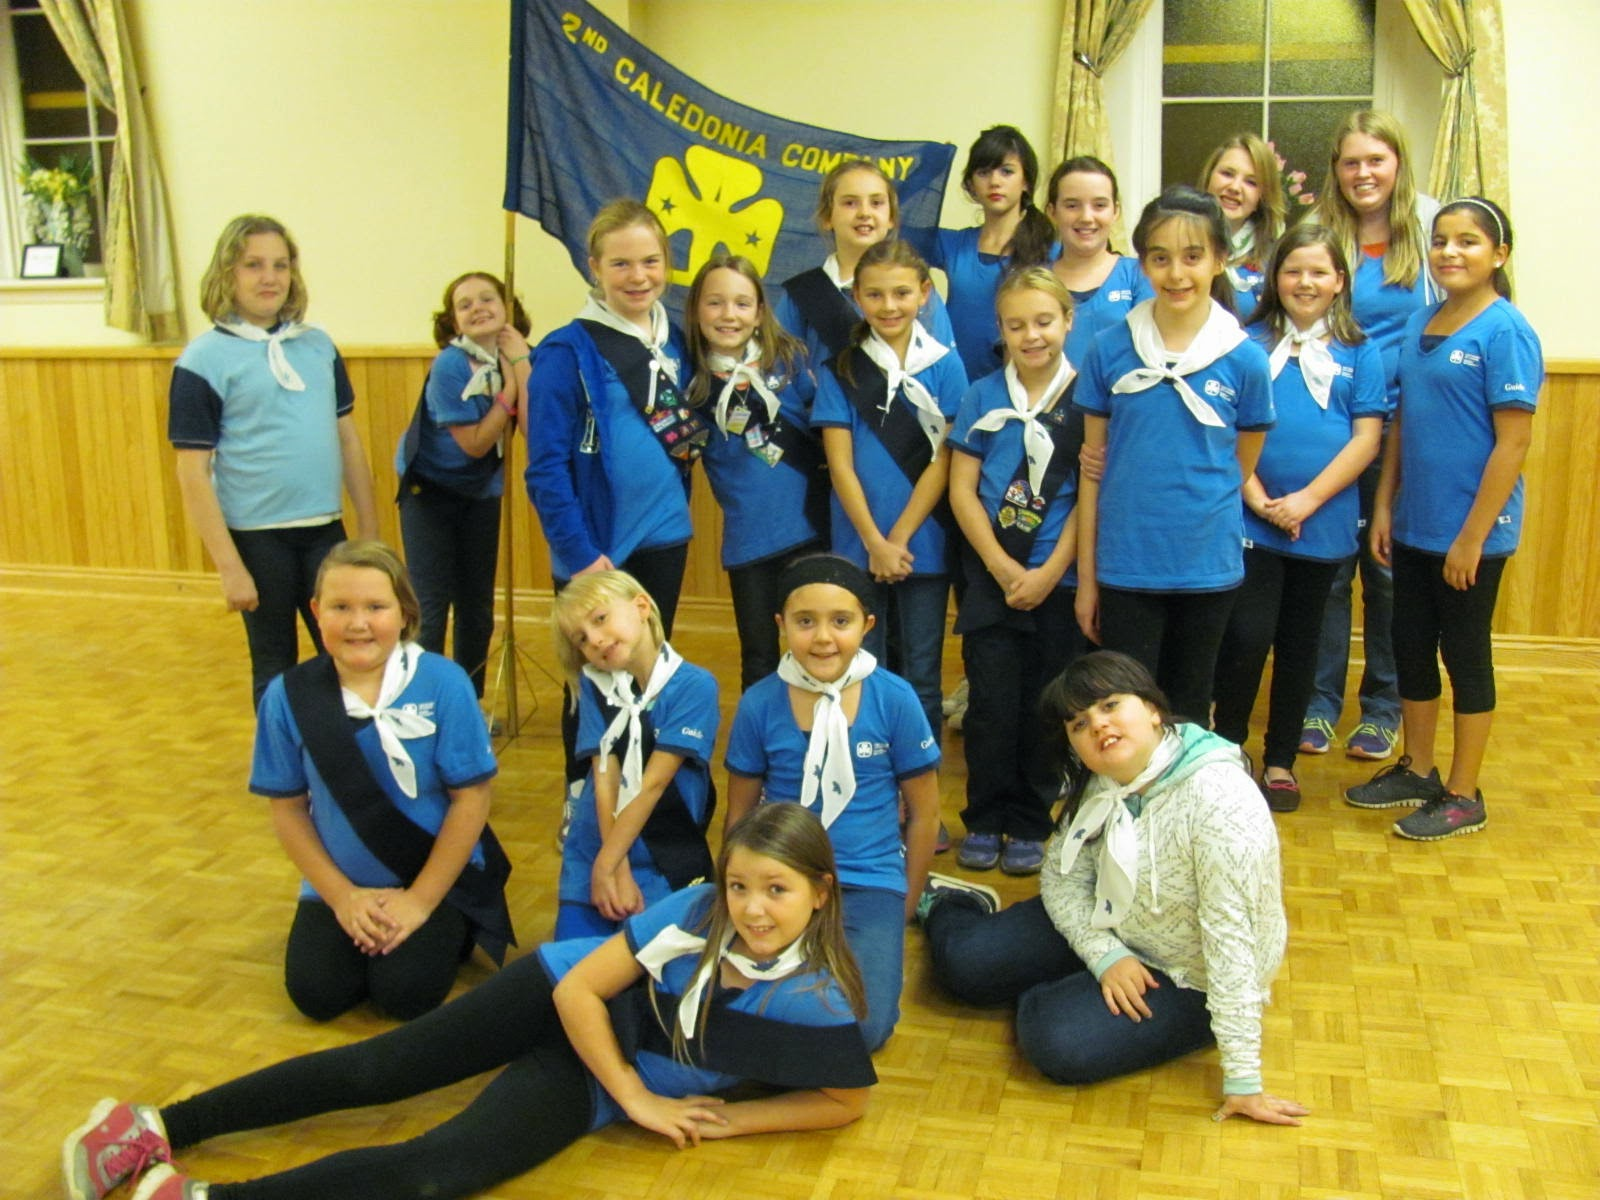 the blog book of the caledonia girl guides pathfinders rangers rh caledoniaguiding blogspot com Enrolment Spelling Enrolment Spelling